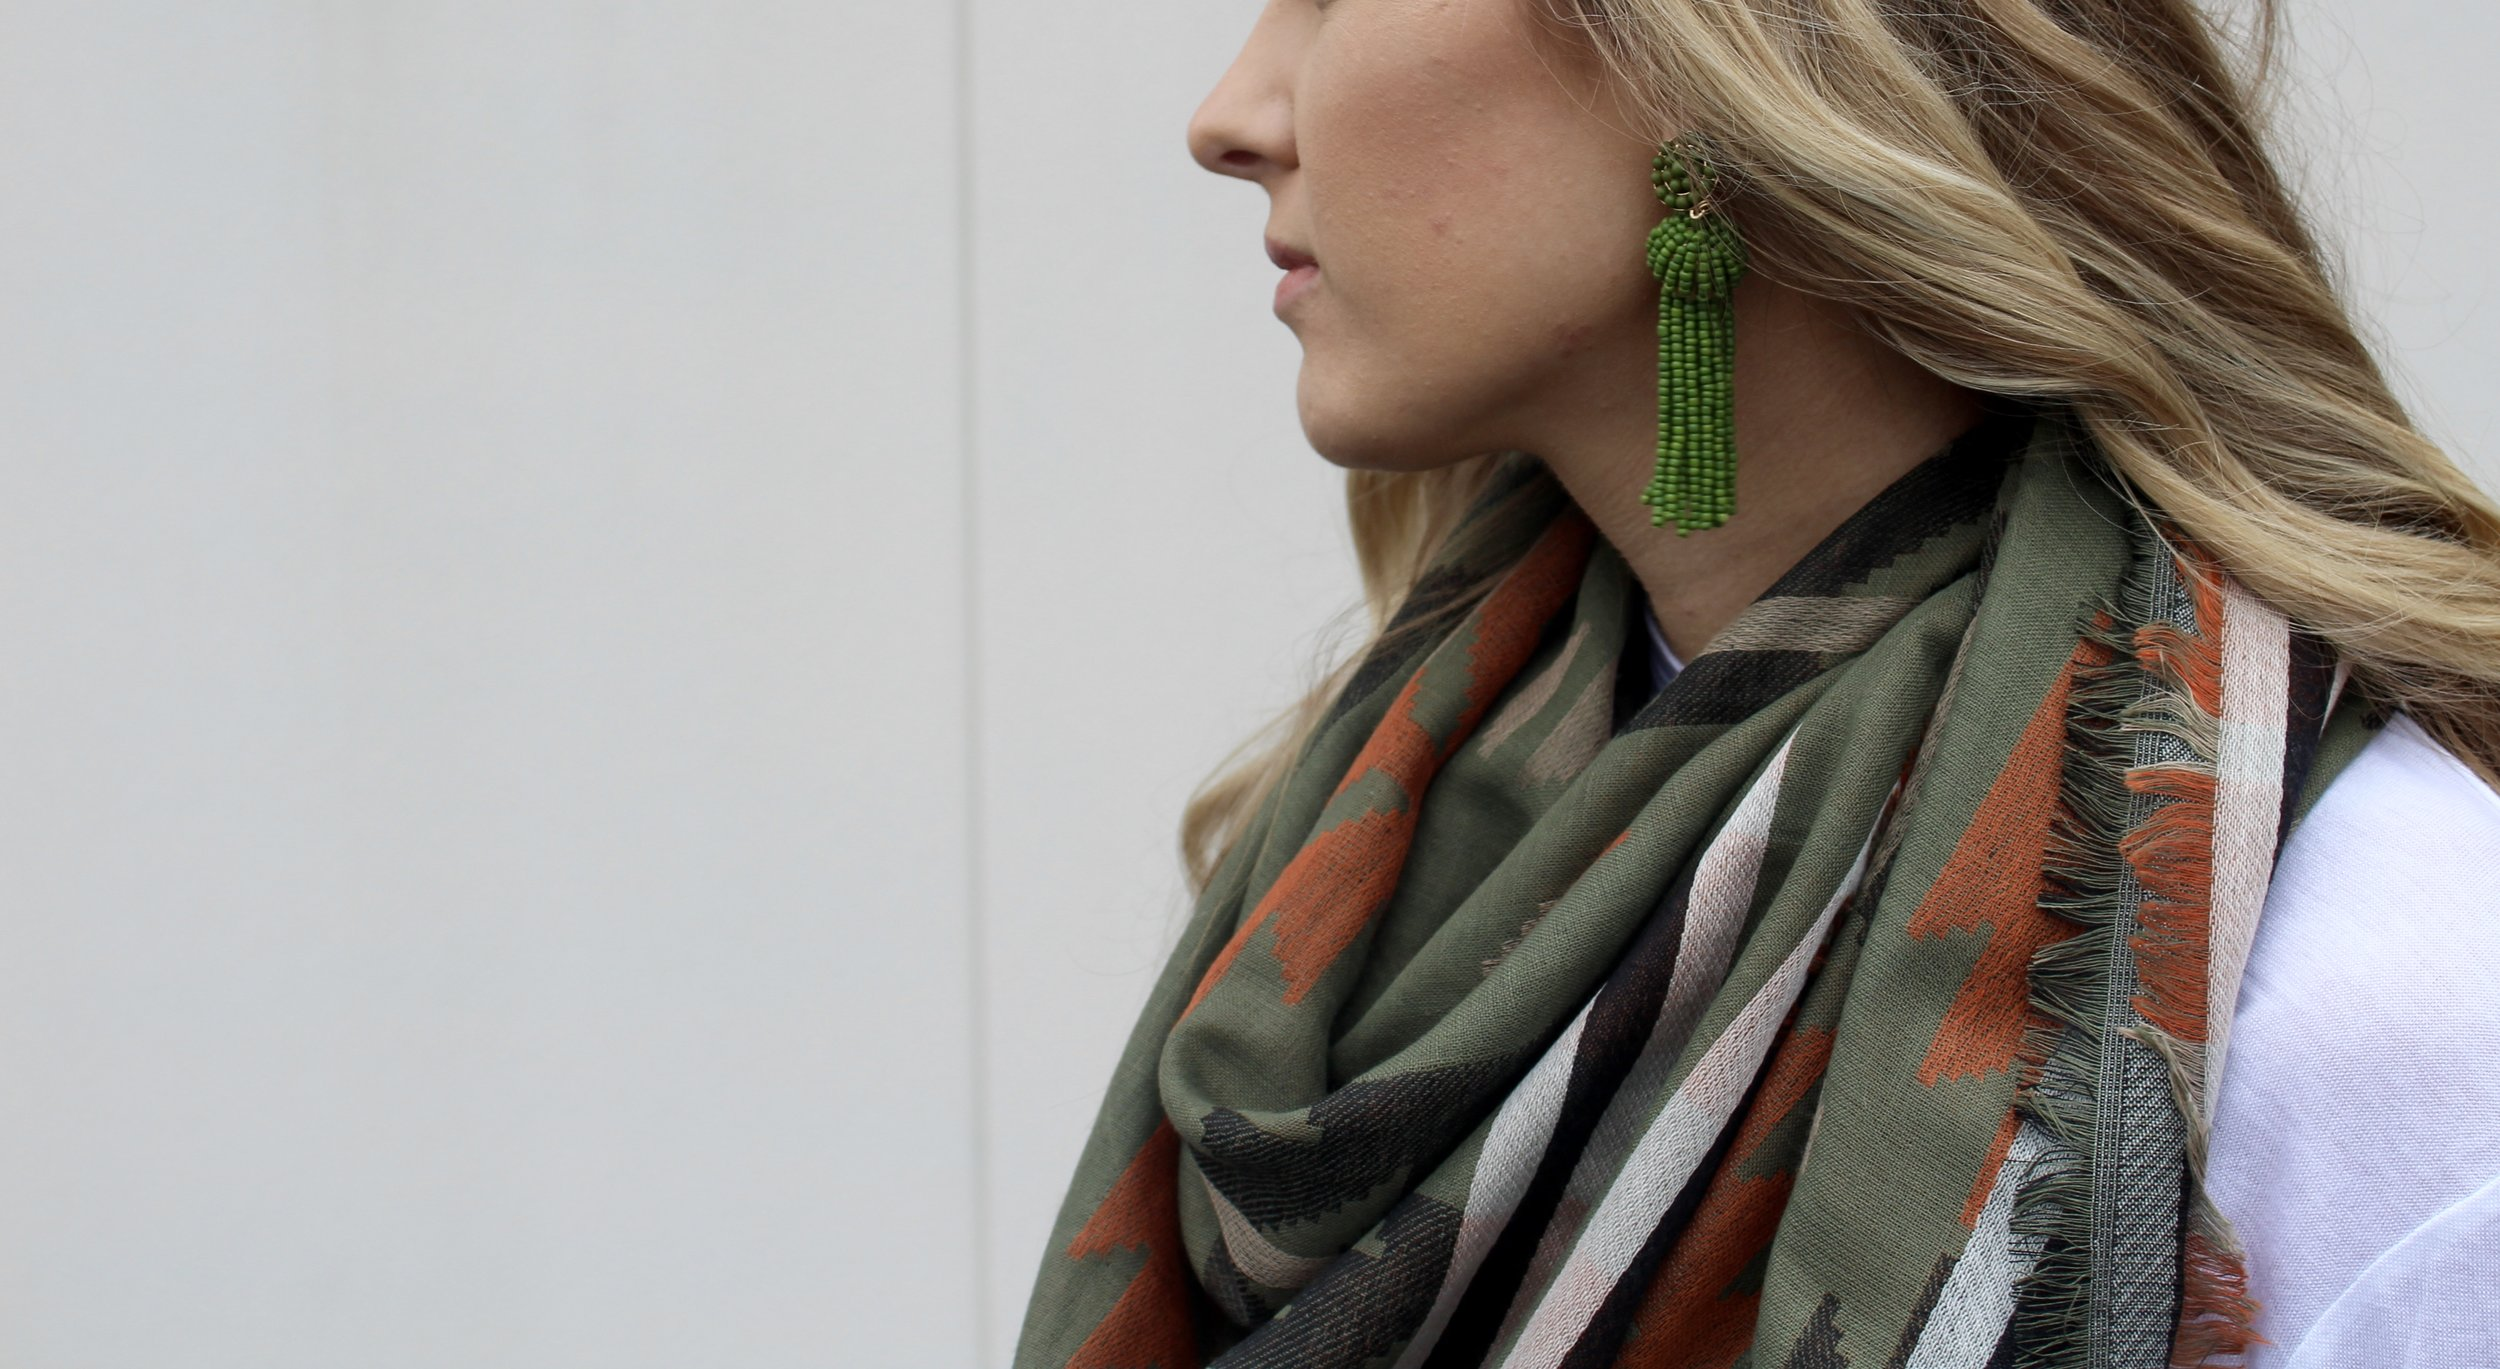 Earrings  // Scarf (sold out, similar  here ) //  Long-sleeve shirt  //  Jeans  //  Loafers